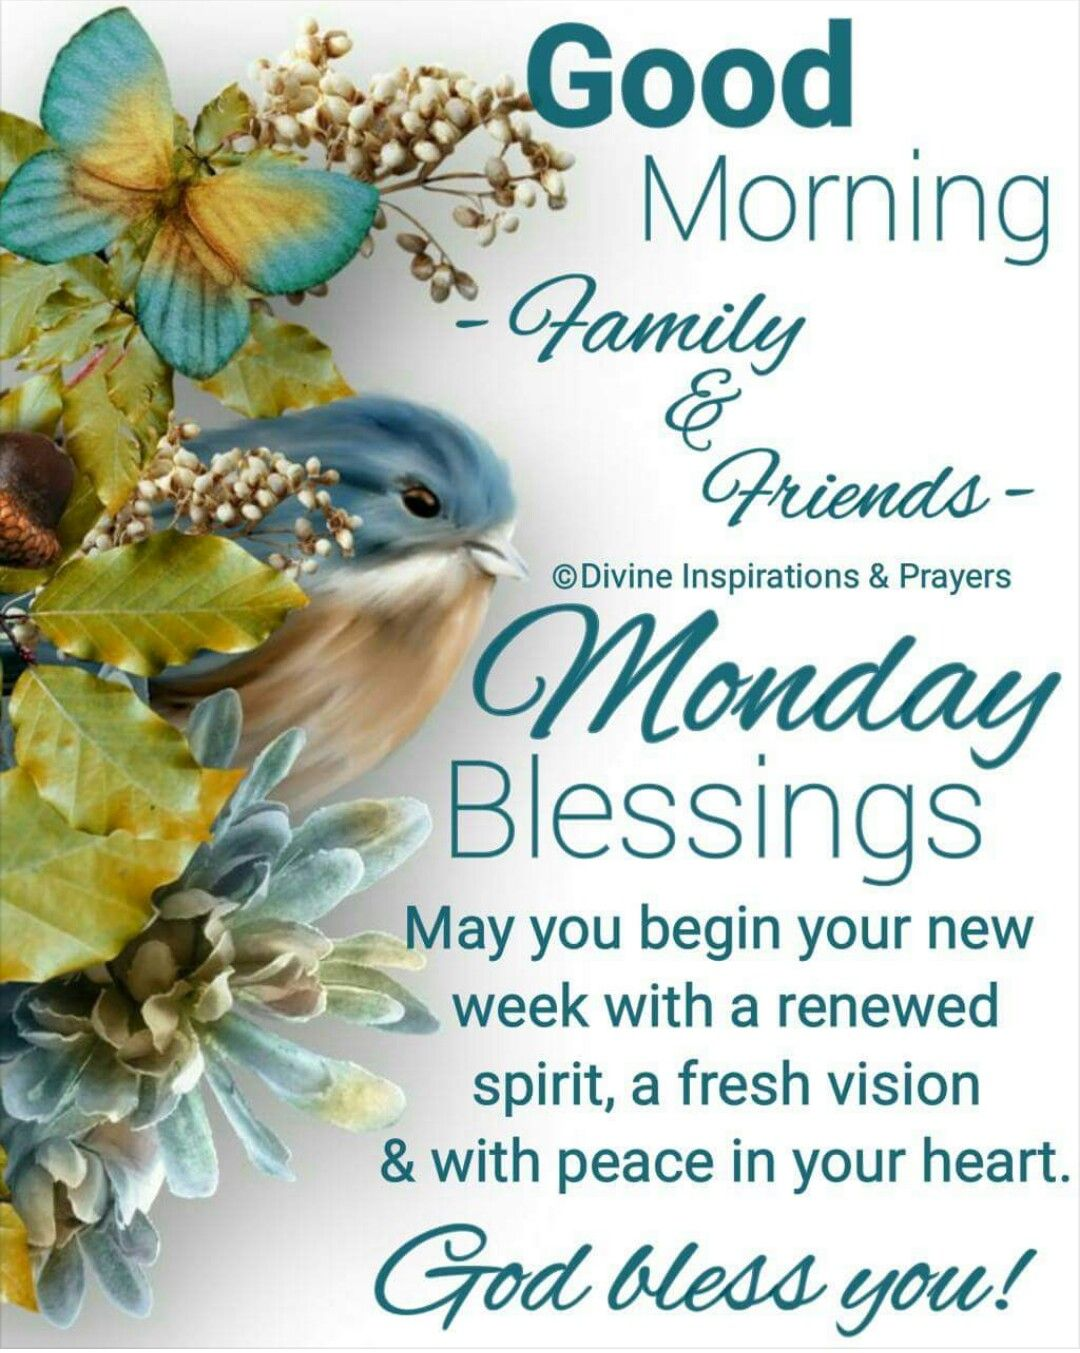 Monday Blessings Good Morning Morning Quotes Monday Blessings